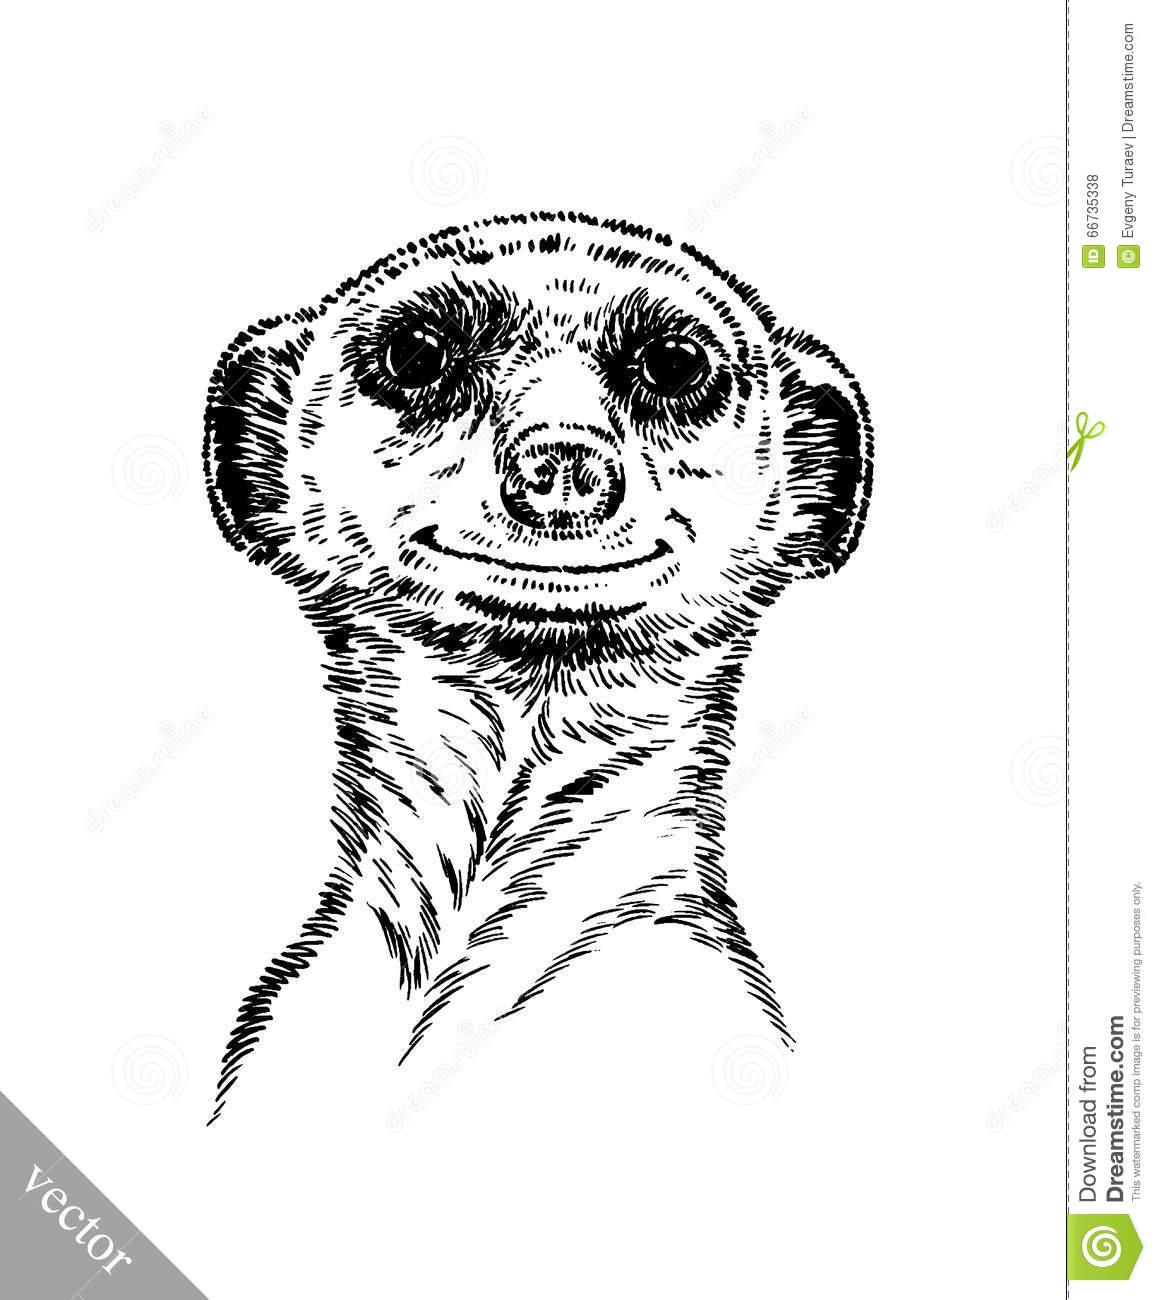 Engrave Ink Draw Meerkat Illustration Stock Vector Image